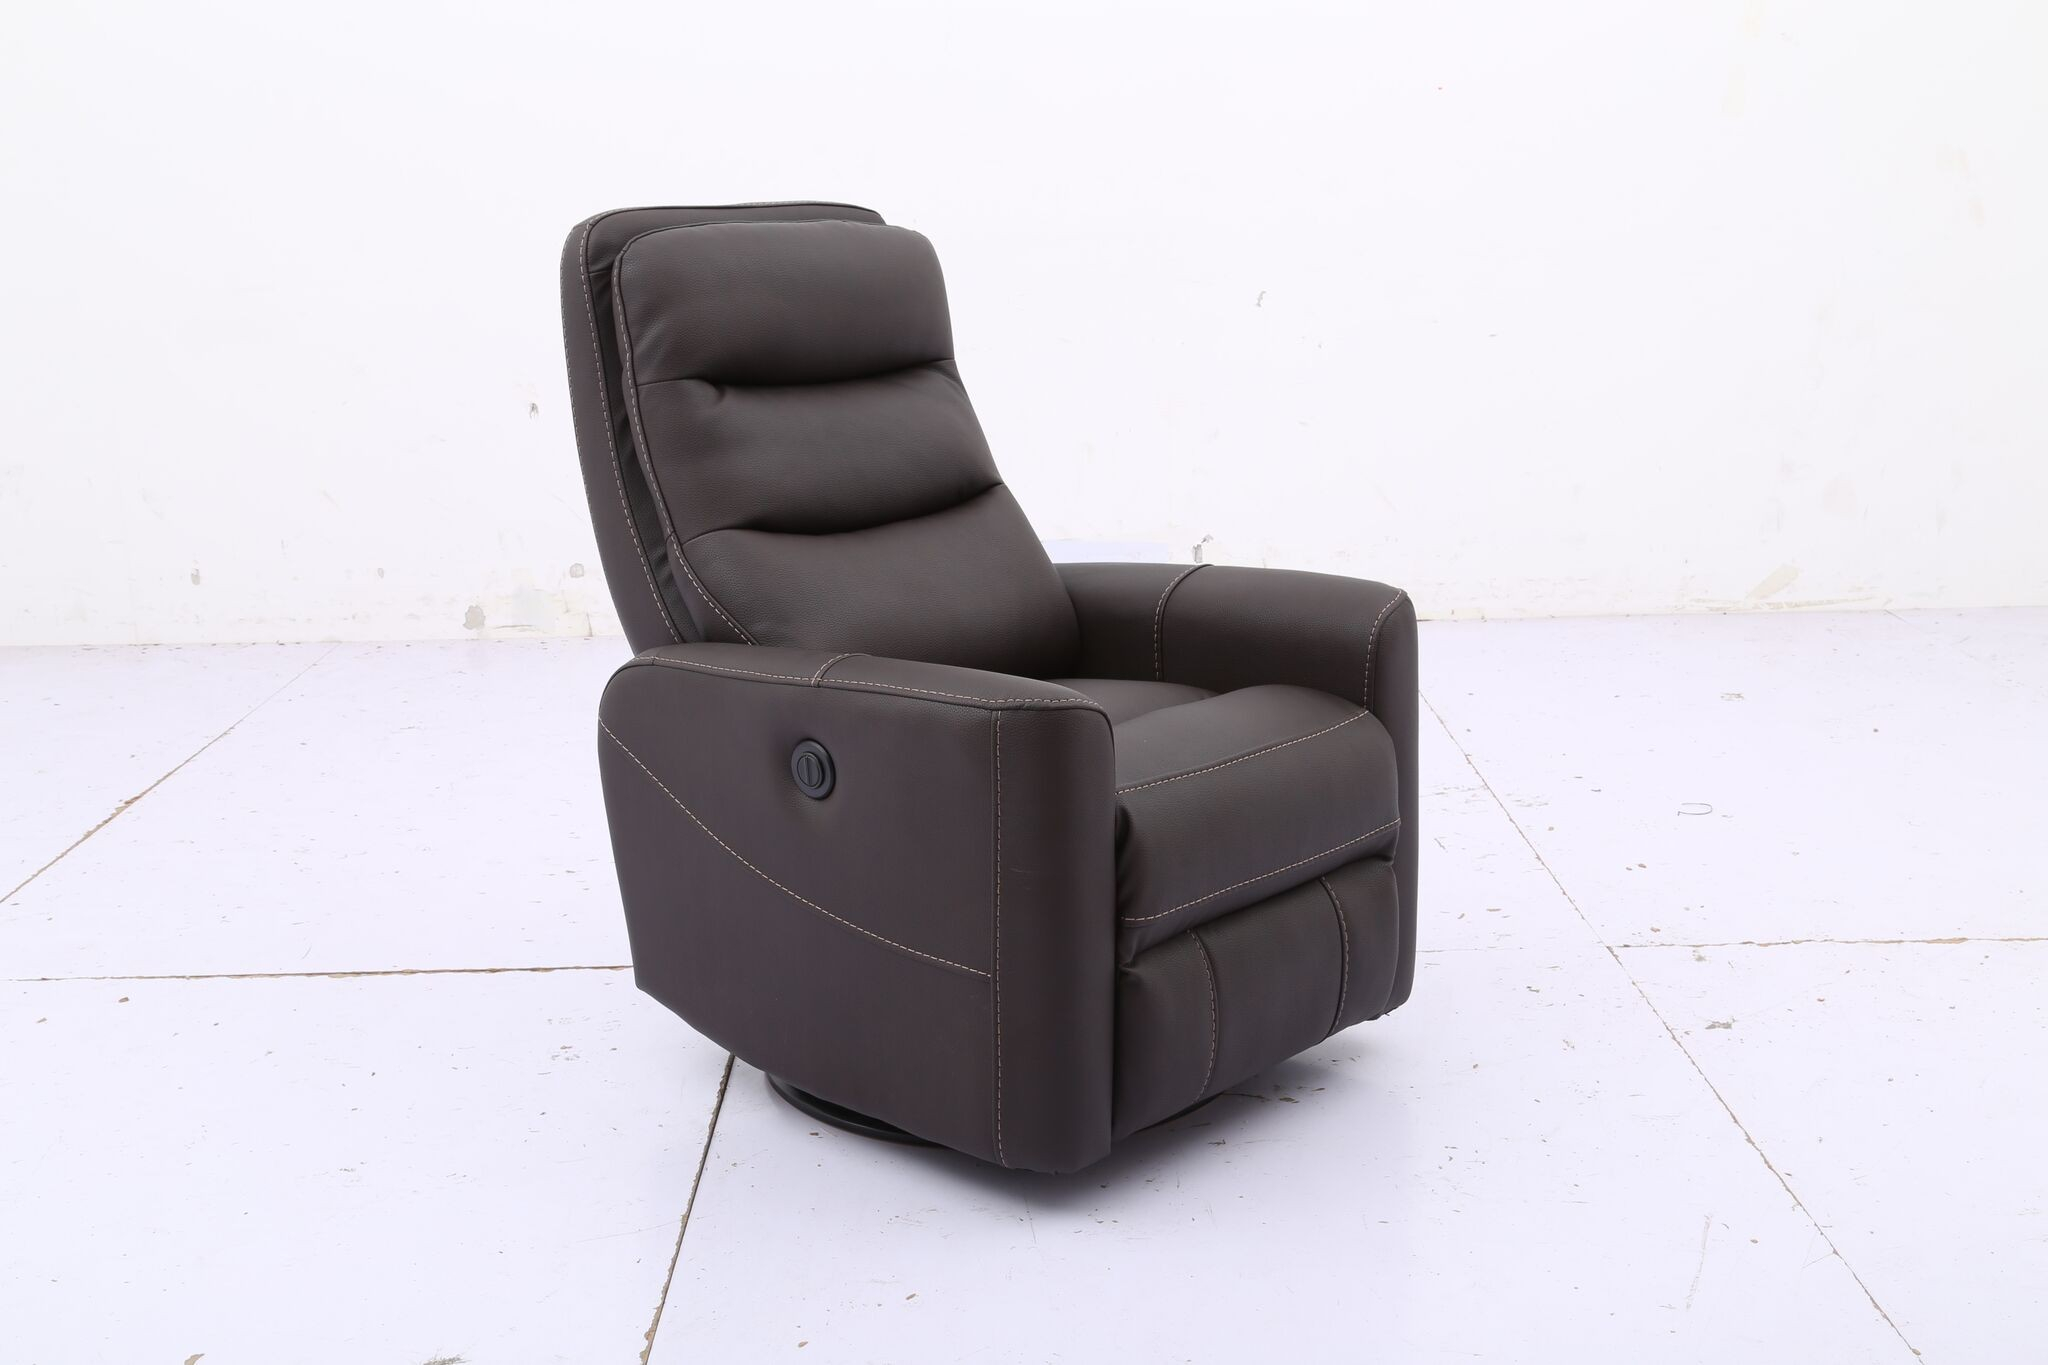 Hercules Chocolate Swivel Power Recliner Pertaining To Hercules Chocolate Swivel Glider Recliners (View 4 of 20)